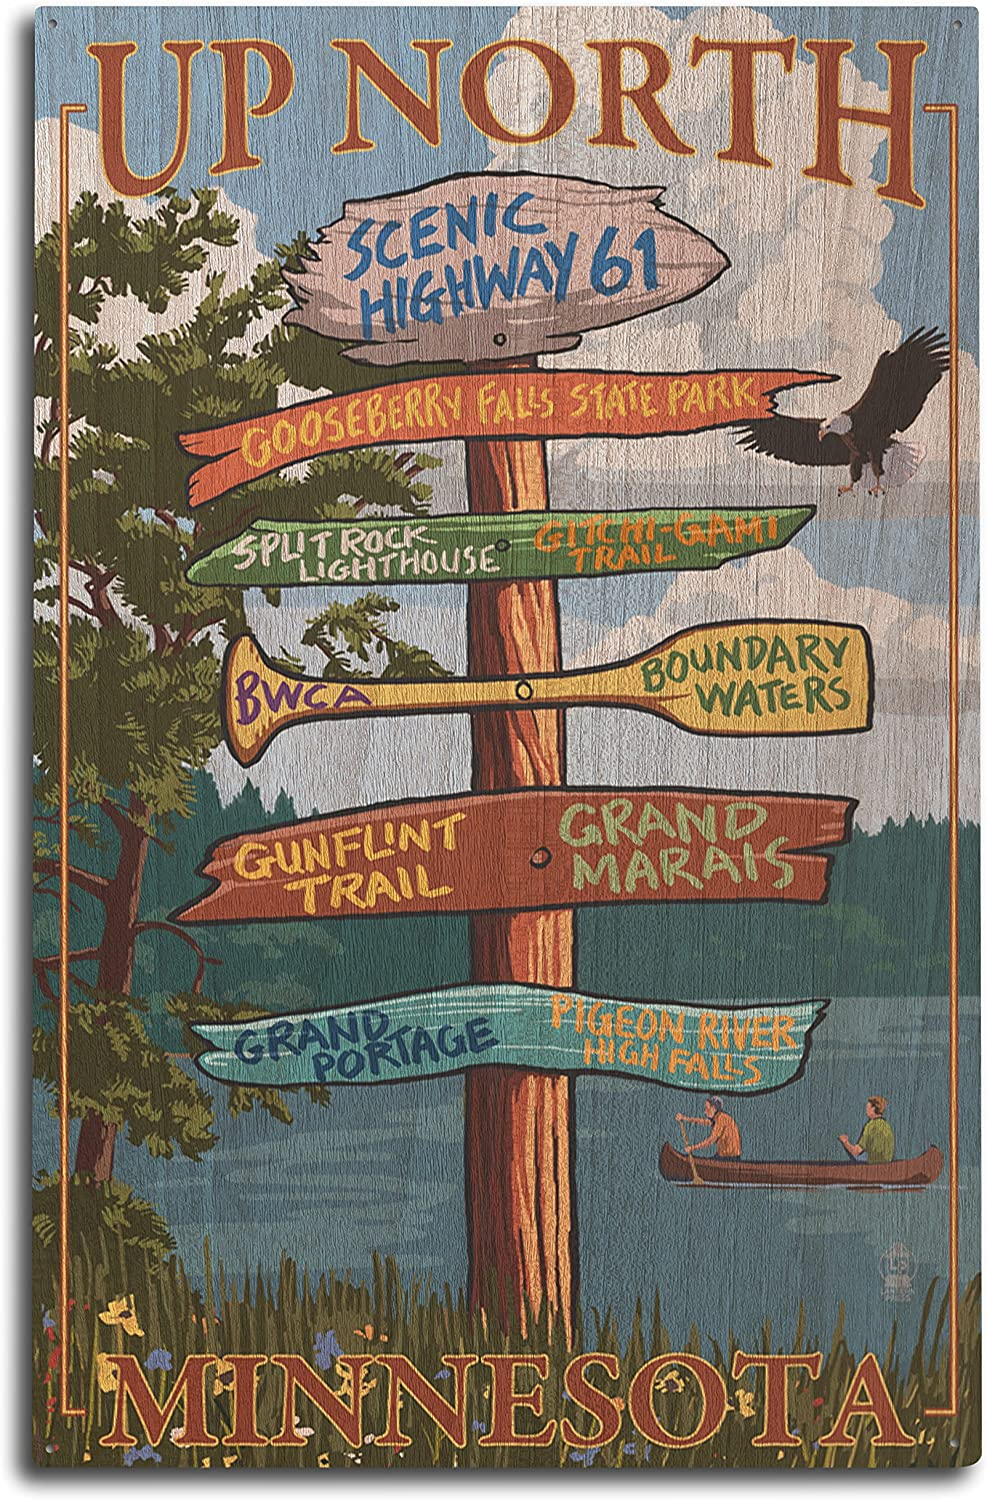 Lantern Press Gooseberry Falls, Minnesota - Destinations Sign (10x15 Wood Wall Sign, Wall Decor Ready to Hang)